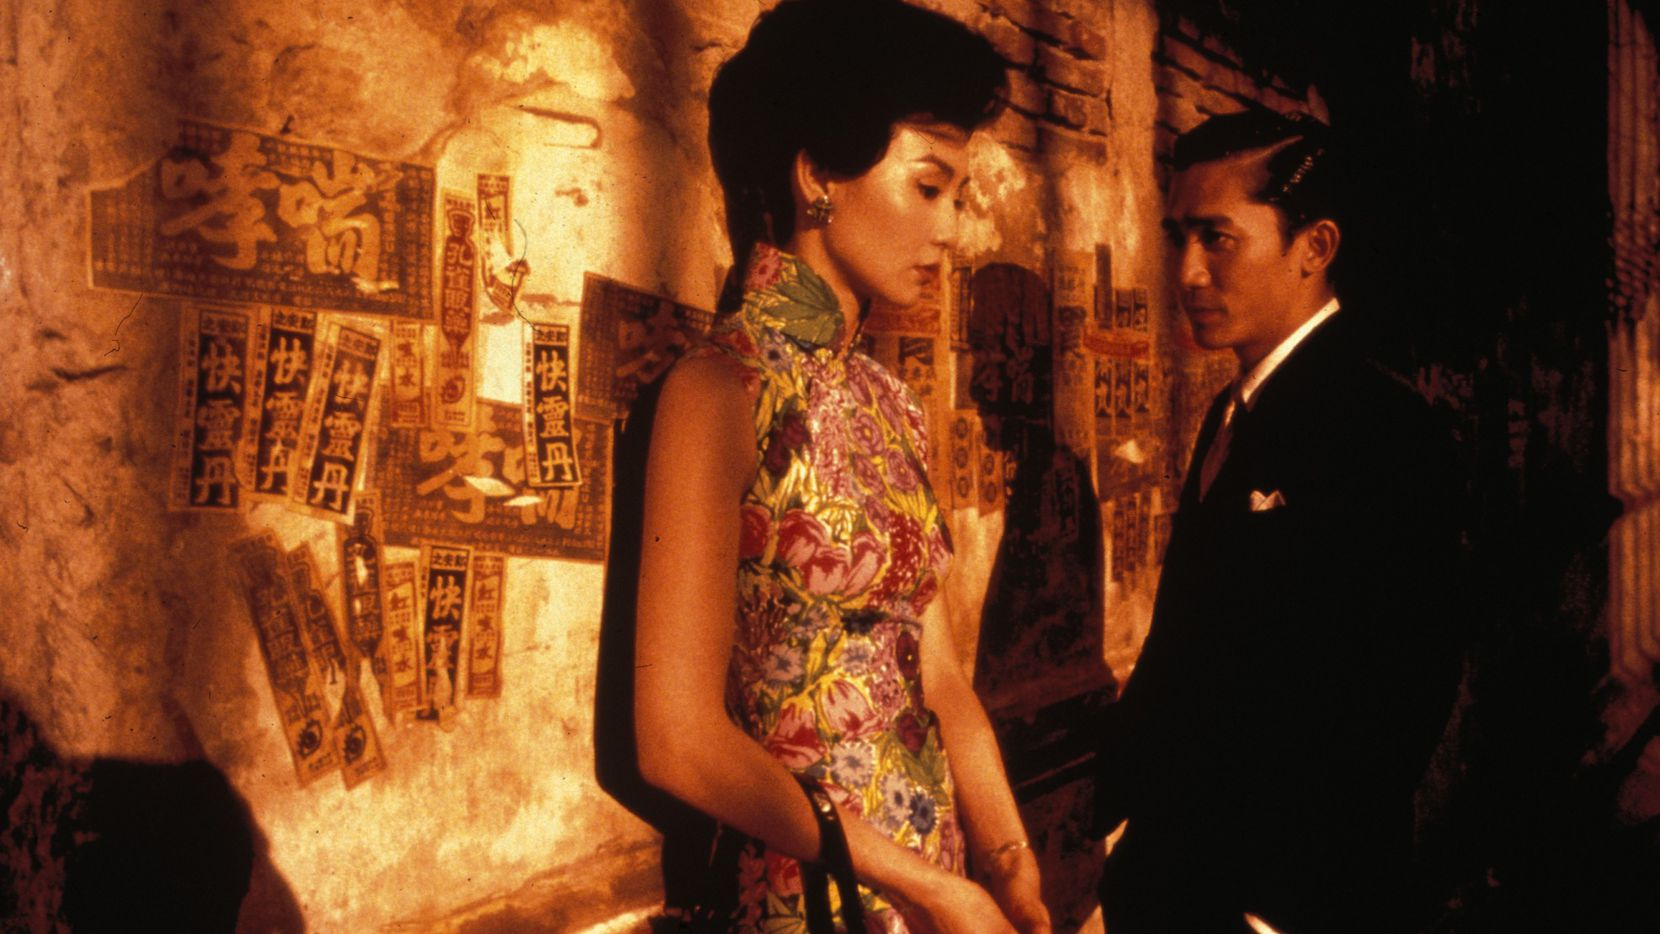 From 1988 to 2004, Hong Kong film director Wong Kar Wai released eight films that changed cinema forever. Now the Texas Theatre is streaming seven of this films, which have been remastered and restored.